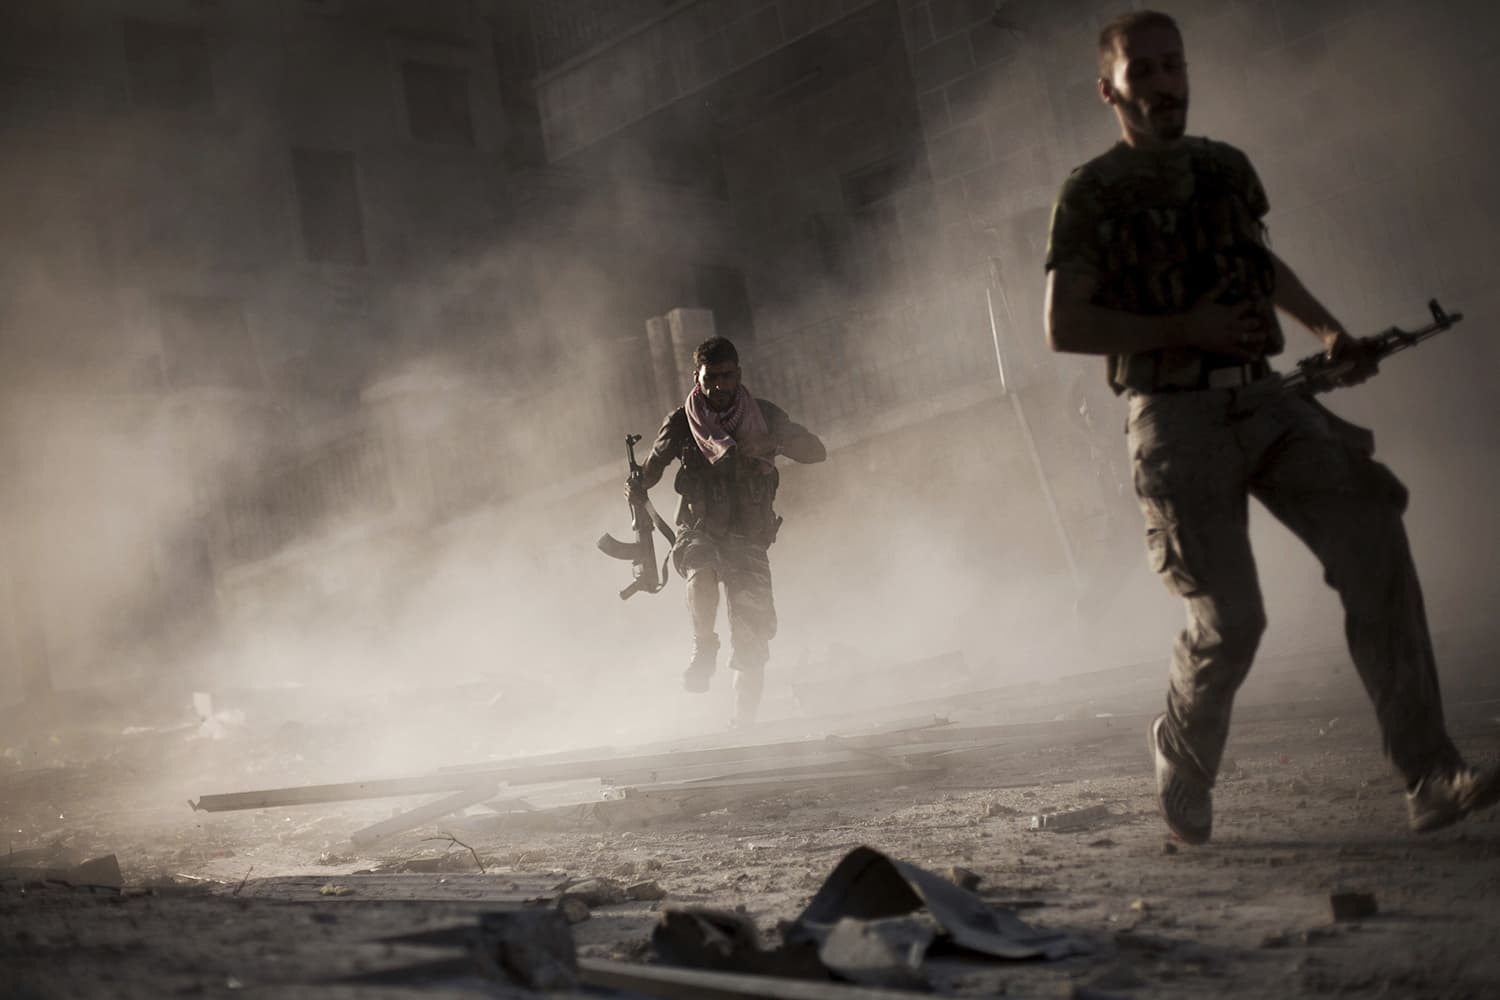 Free Syrian Army fighters run away after attacking a Syrian Army tank during fighting in the Izaa district in Aleppo, Syria, Friday, Sept. 7, 2012. ─ AP/File